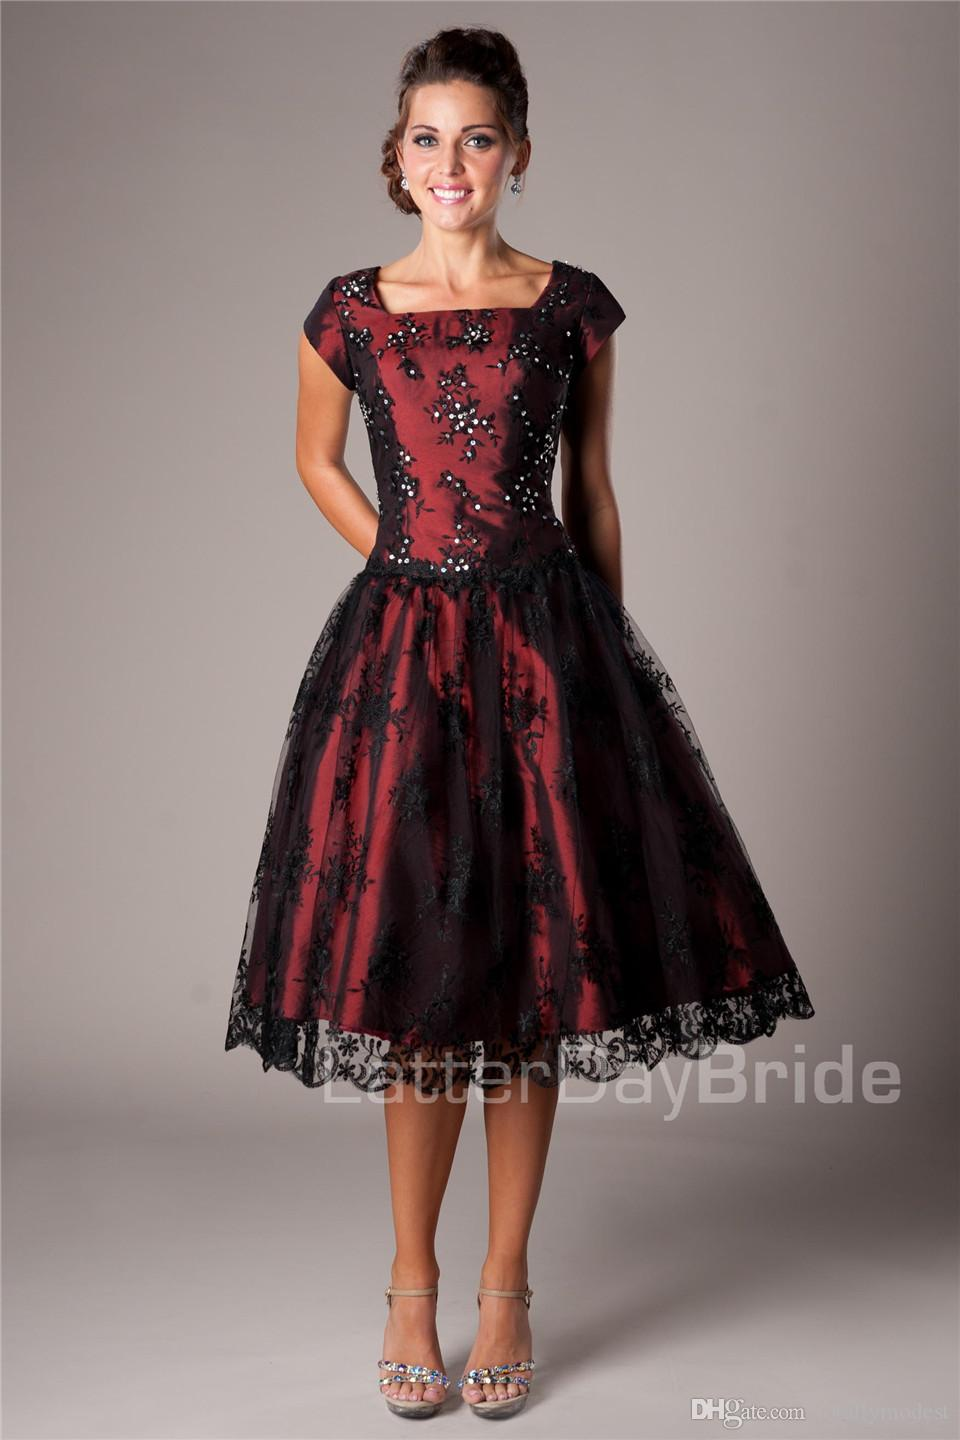 Black And Red Vintage Lace Short Modest Cocktail Dresses With Cap Sleeves A-line Knee Length Short Prom Cocktail Gowns Lace-Up Back Juniors